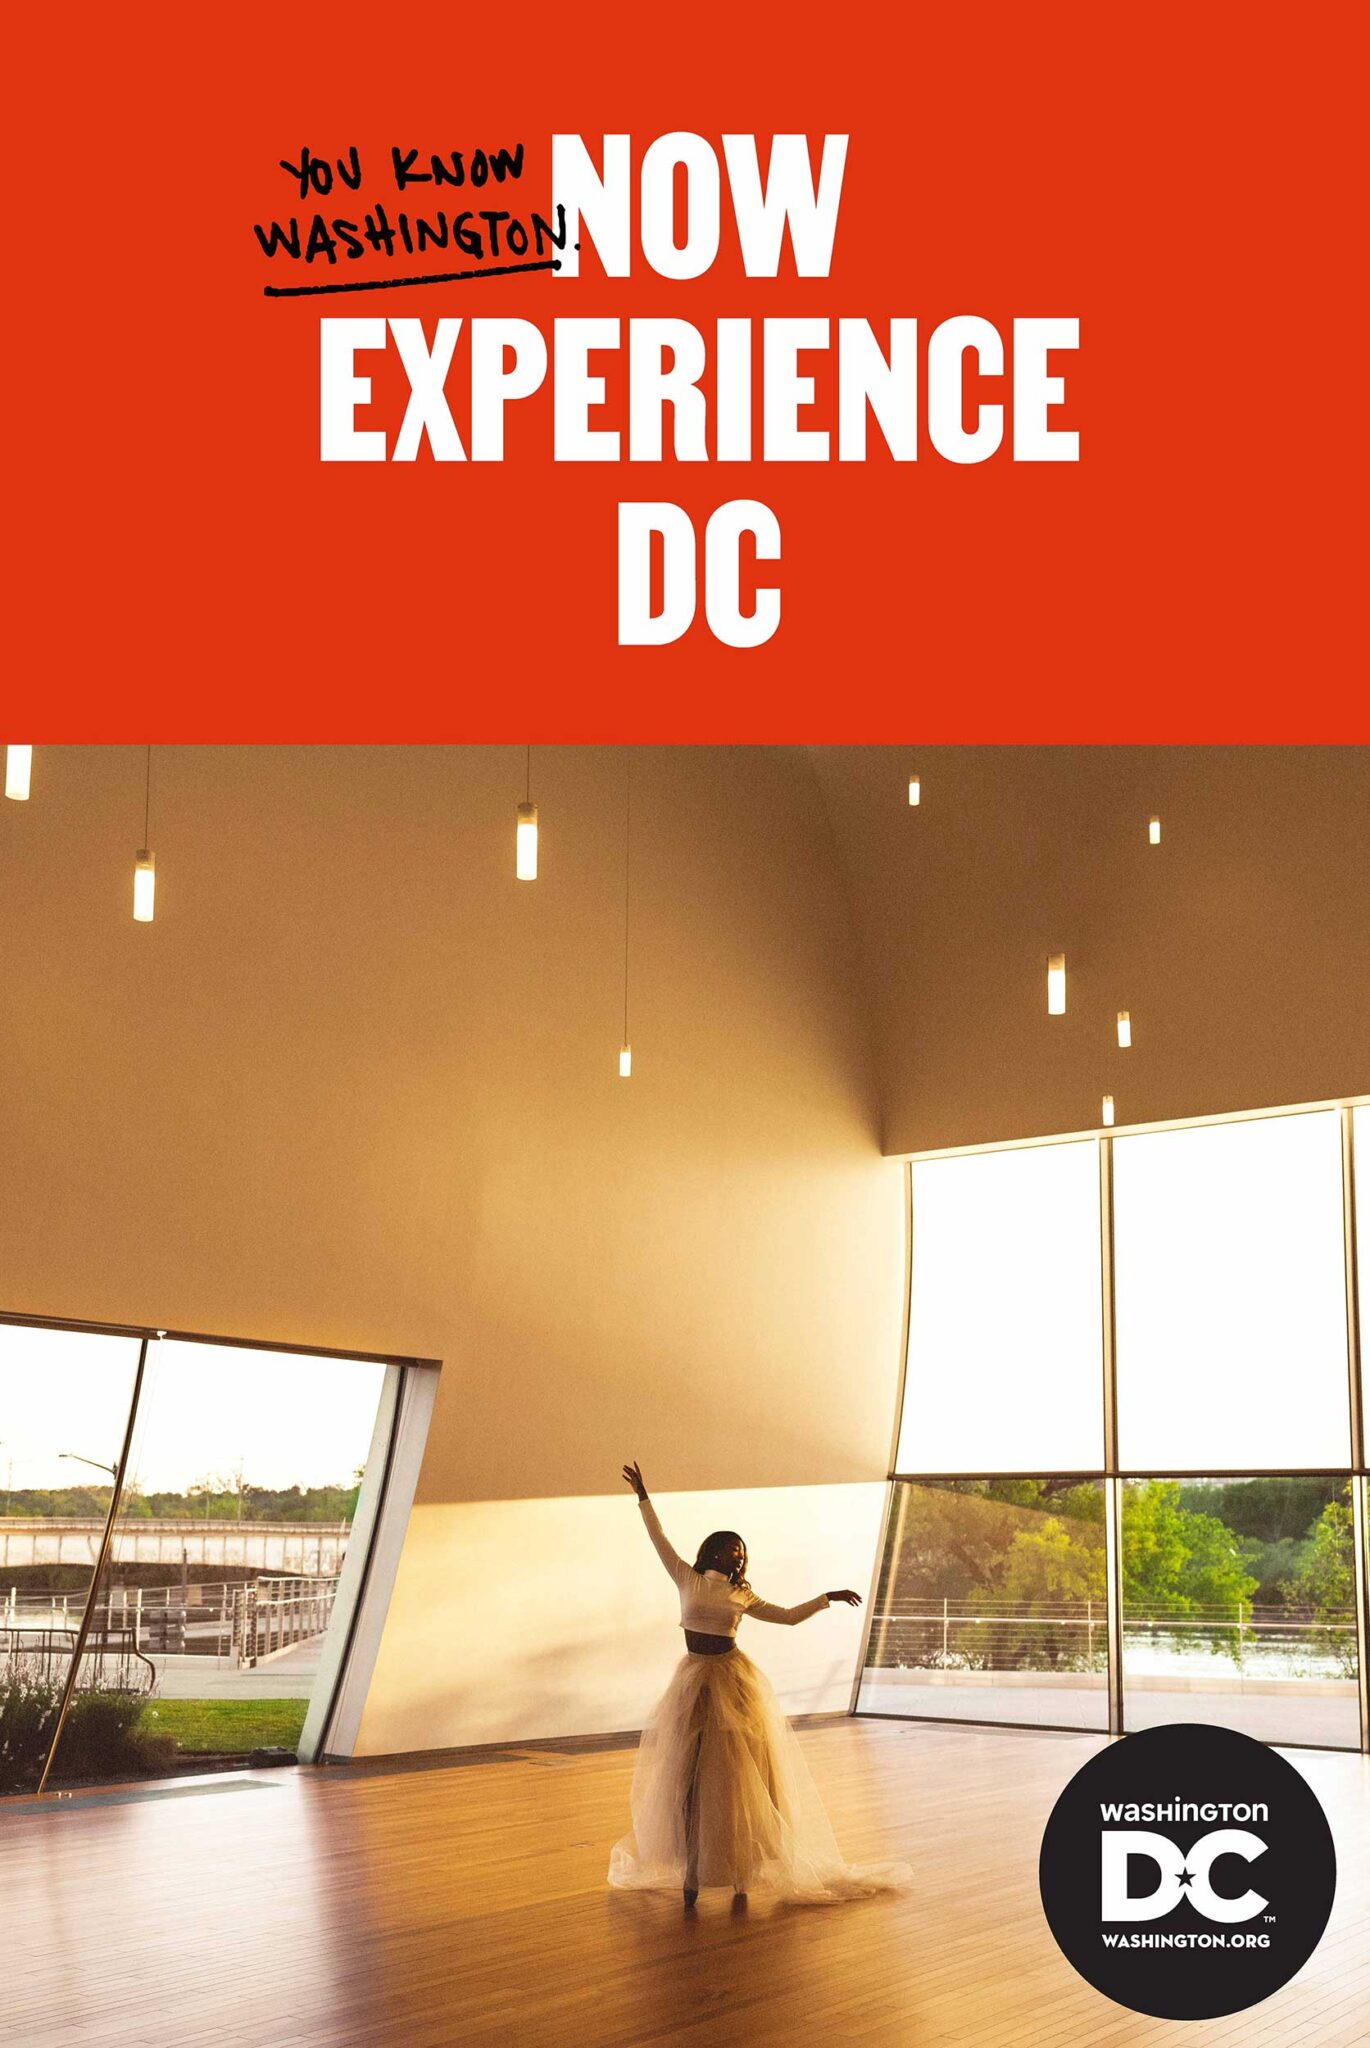 Experience-DC-Ad-Boards_Page_3